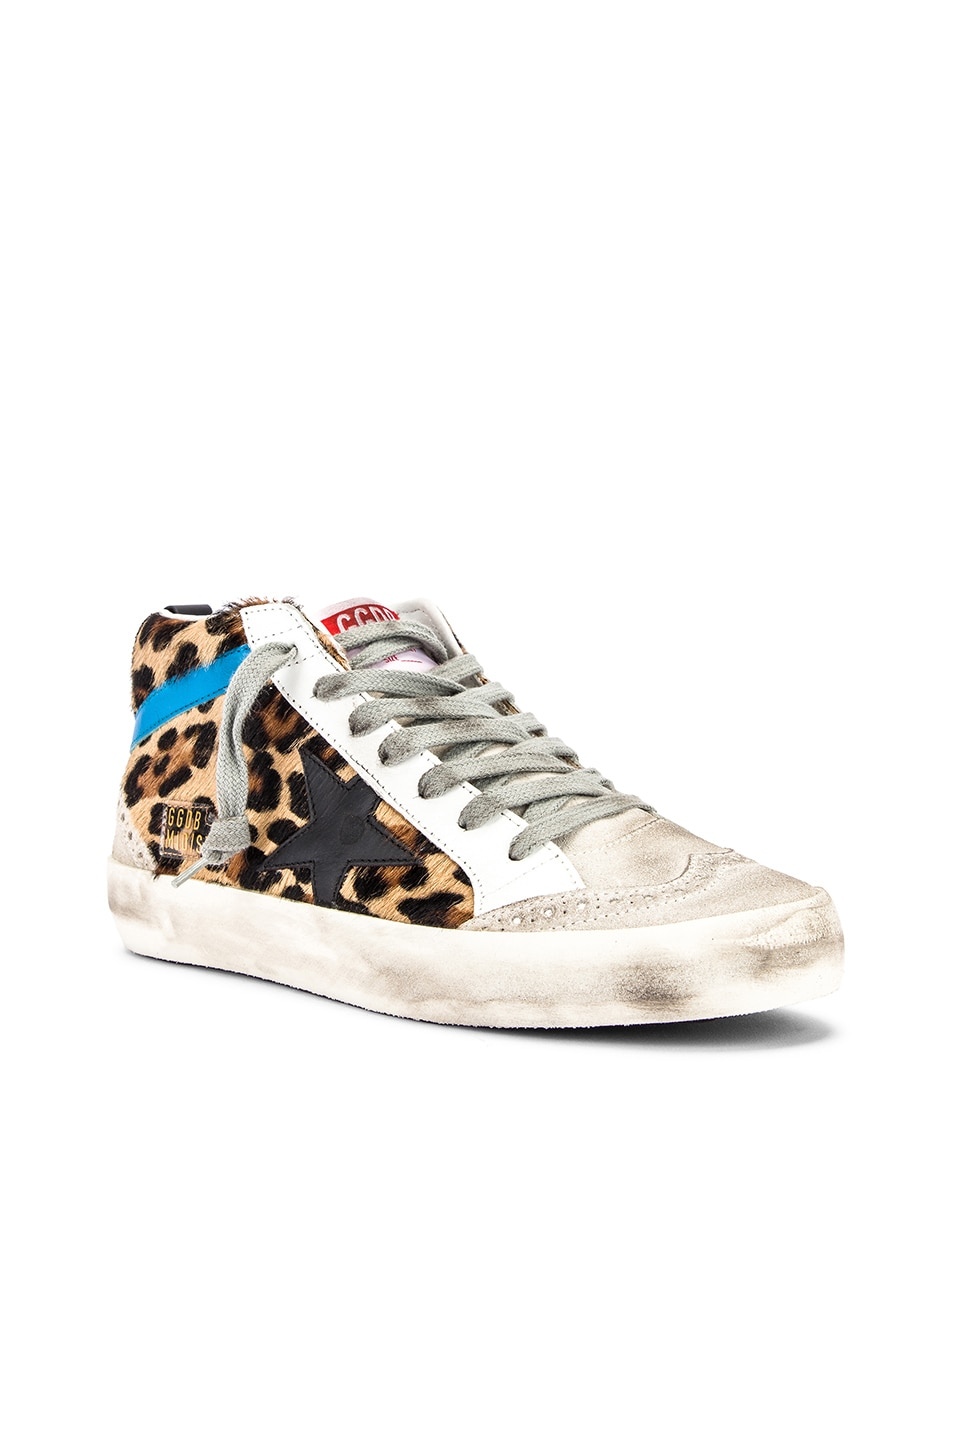 Image 2 of Golden Goose Mid Star Sneaker in Leopard Pony & Black